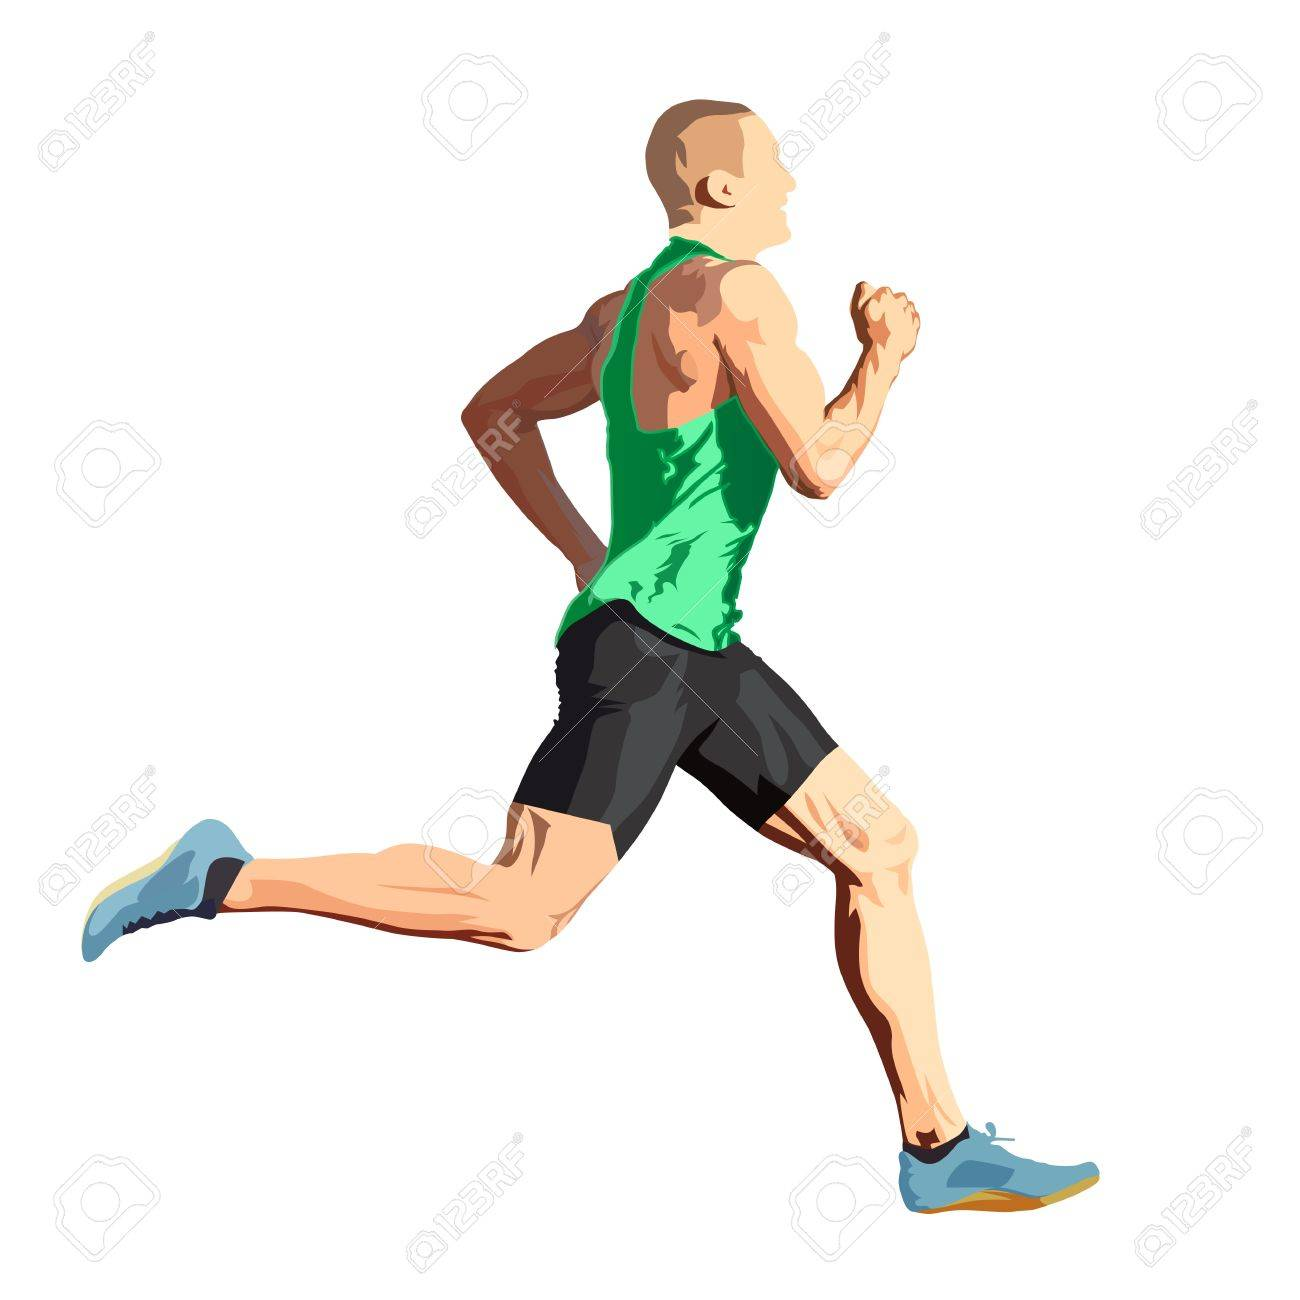 Running man in green shirt, isolated vector illustration, side view - 80951580